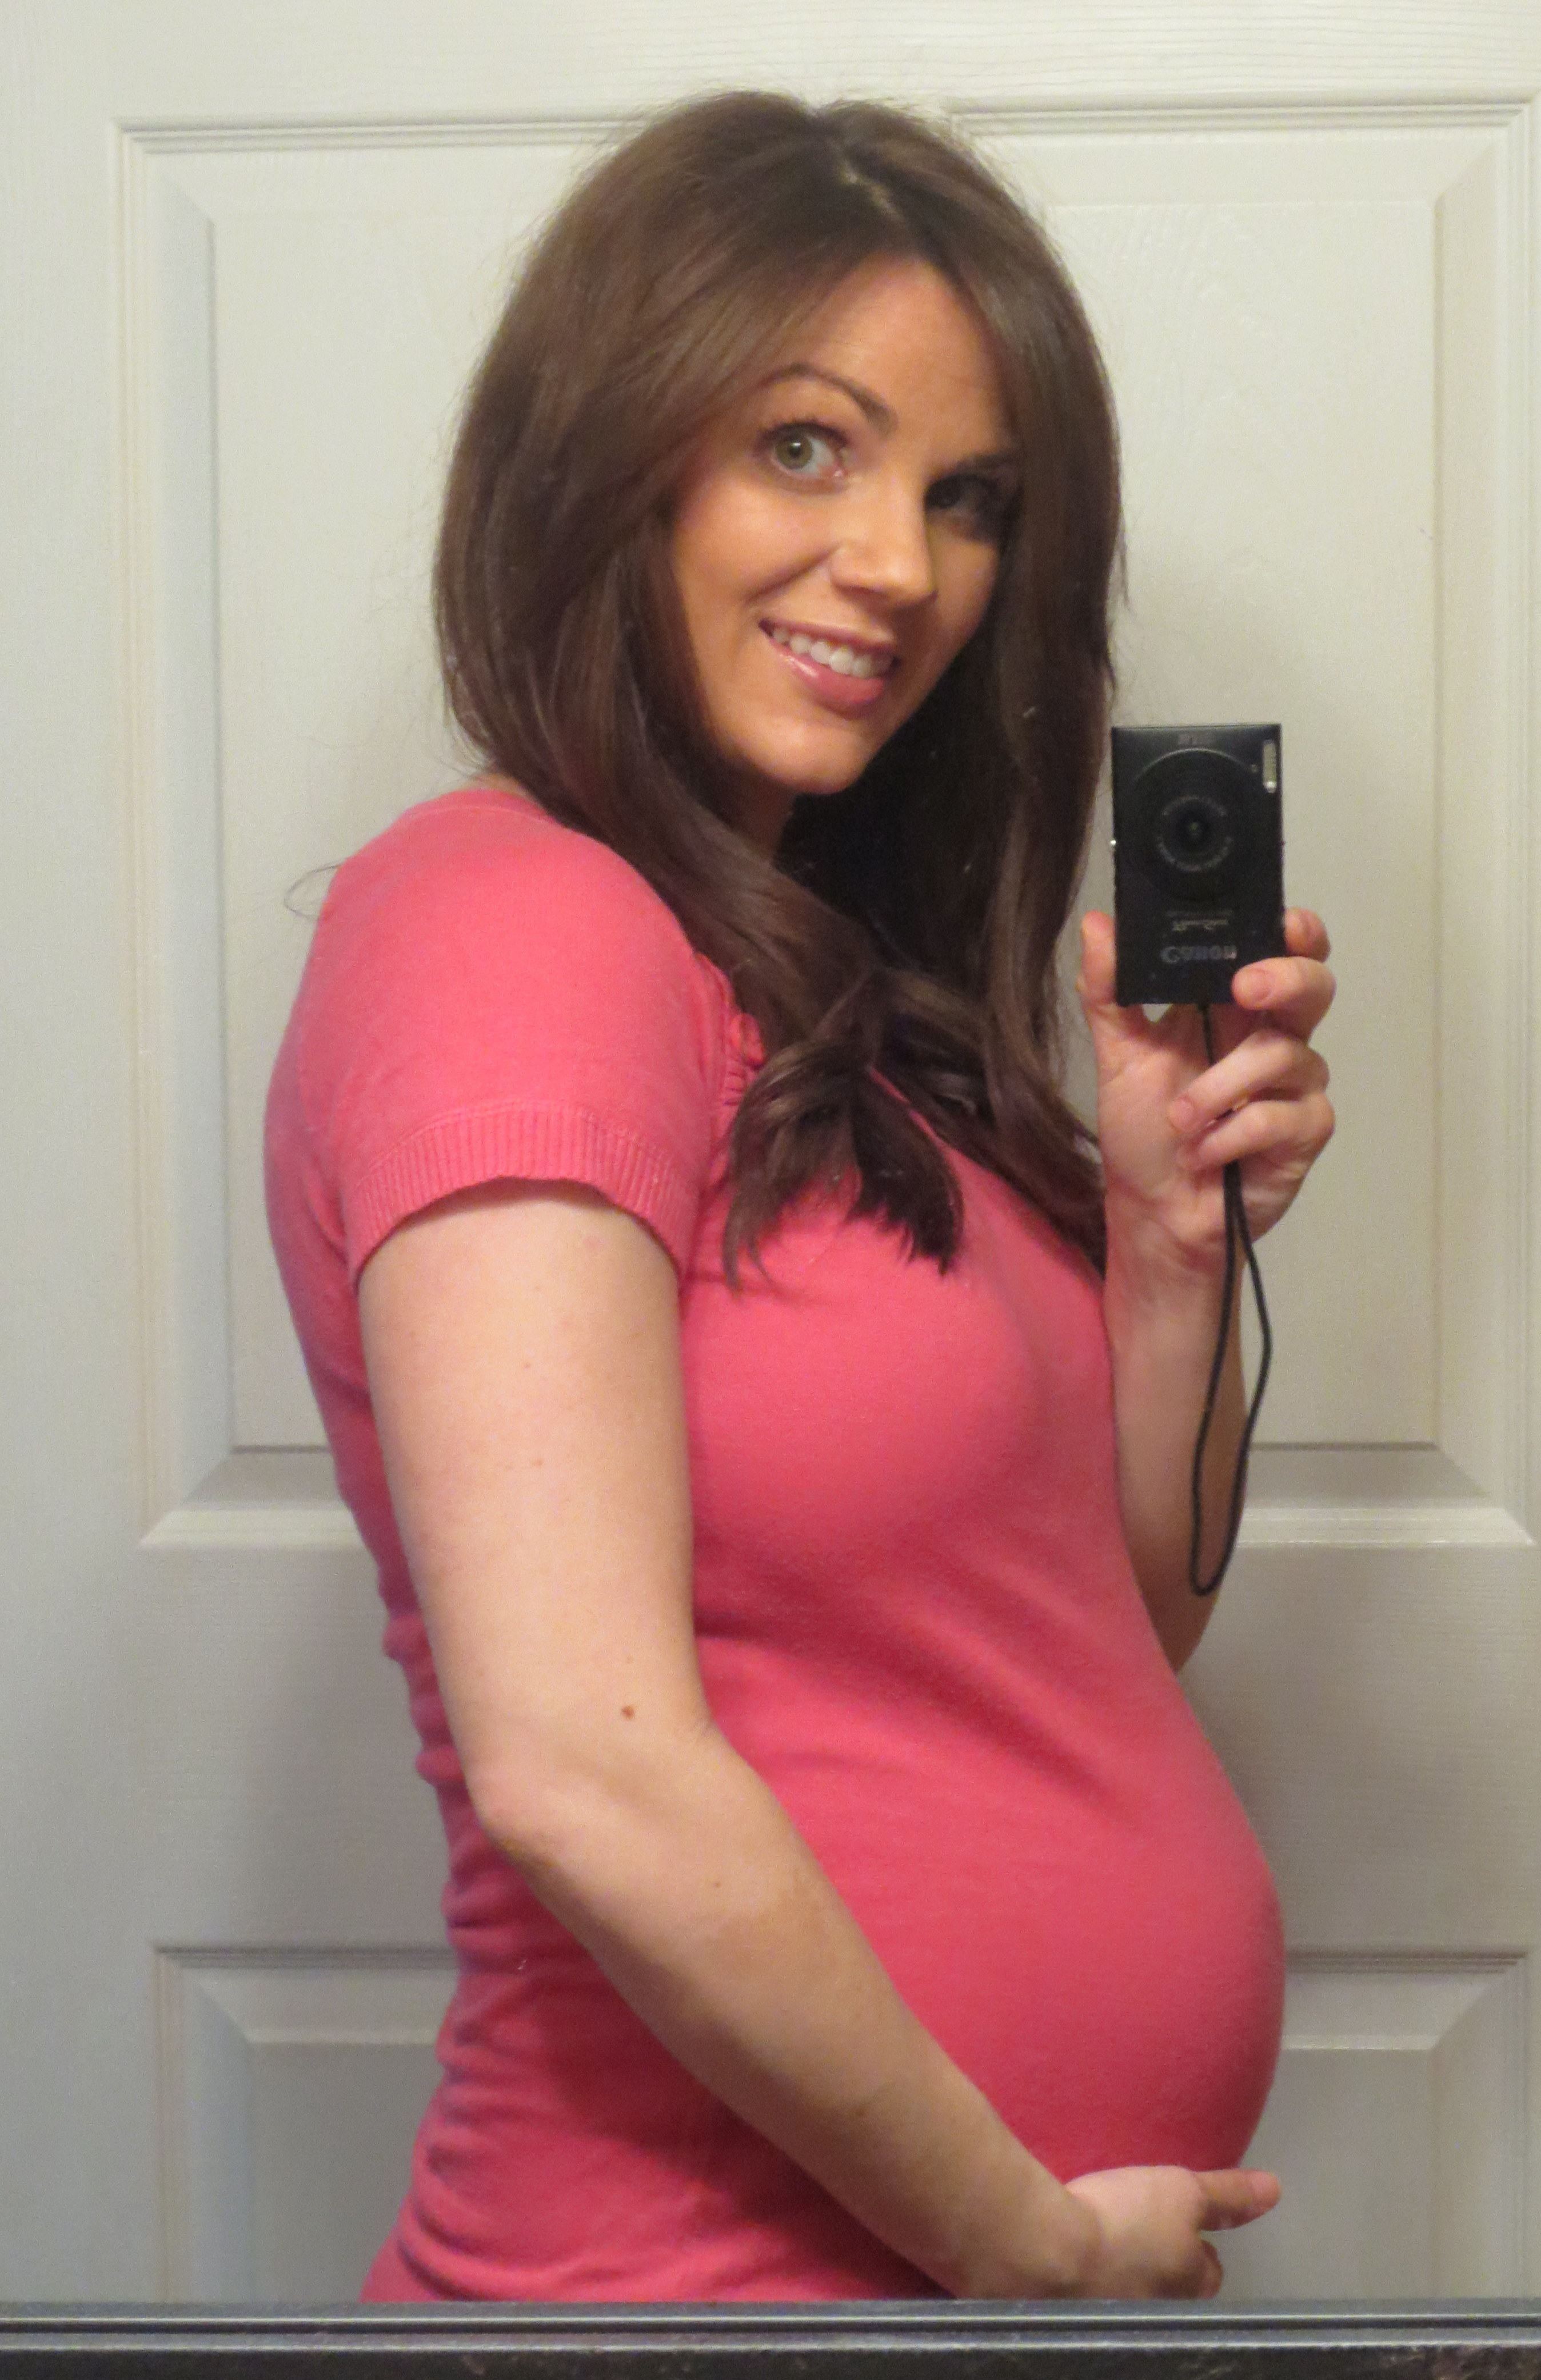 21 Weeks Pregnant with Twins